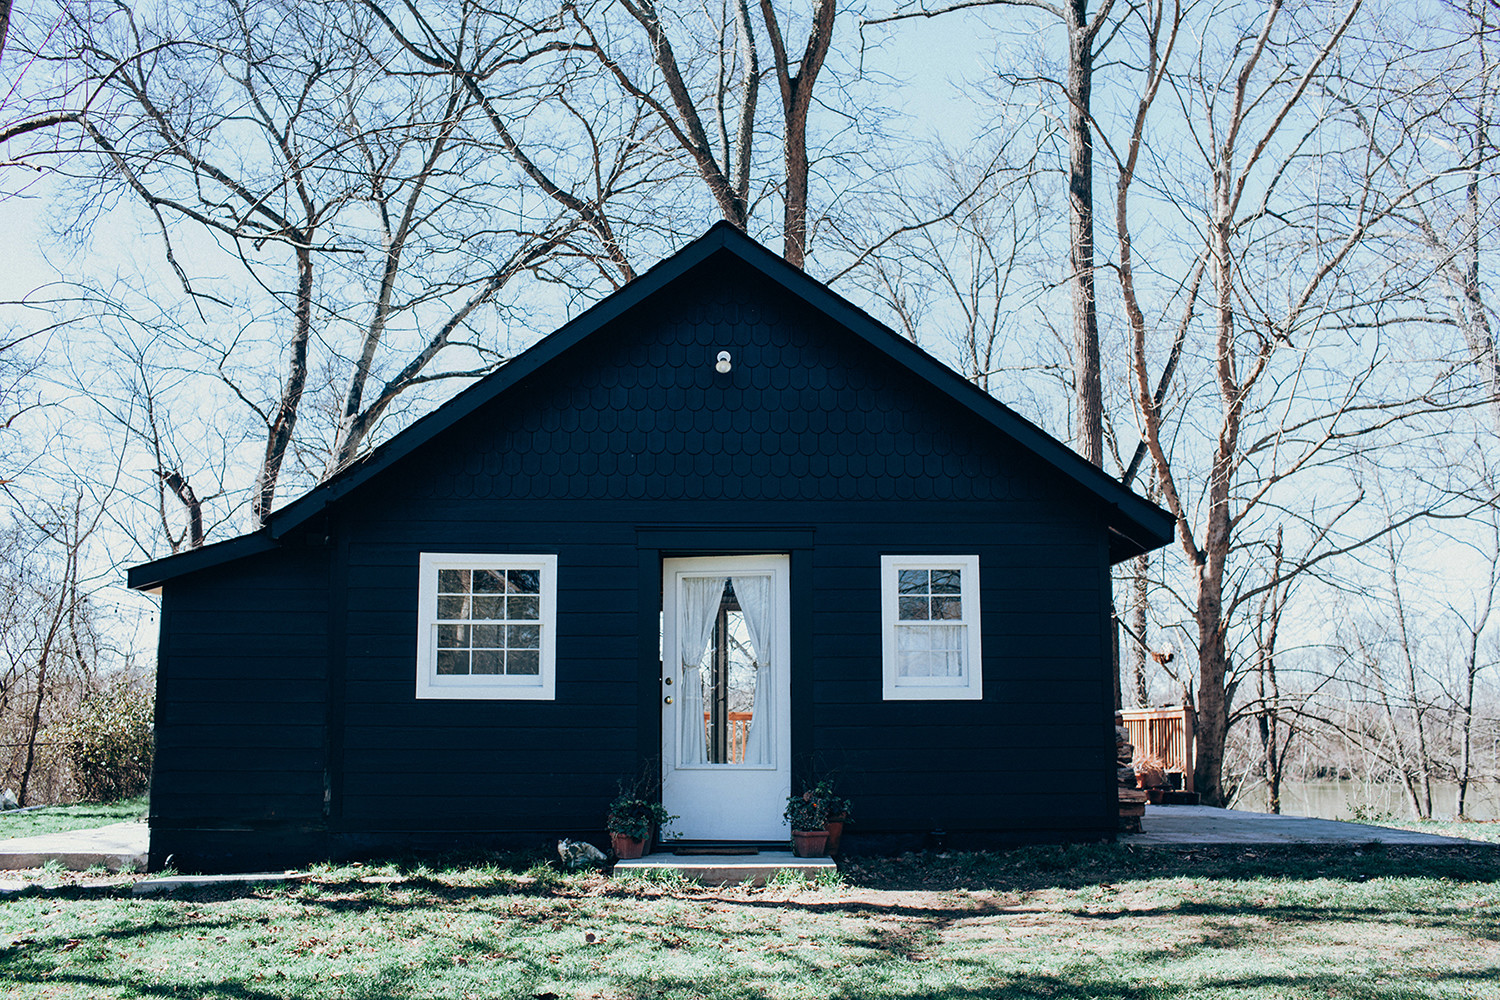 The exterior of the cottage is painted a deep, inky black color. Its crisp-white door and windows provide accent against the moody-toned paint job. All photos by Emily Dorio.